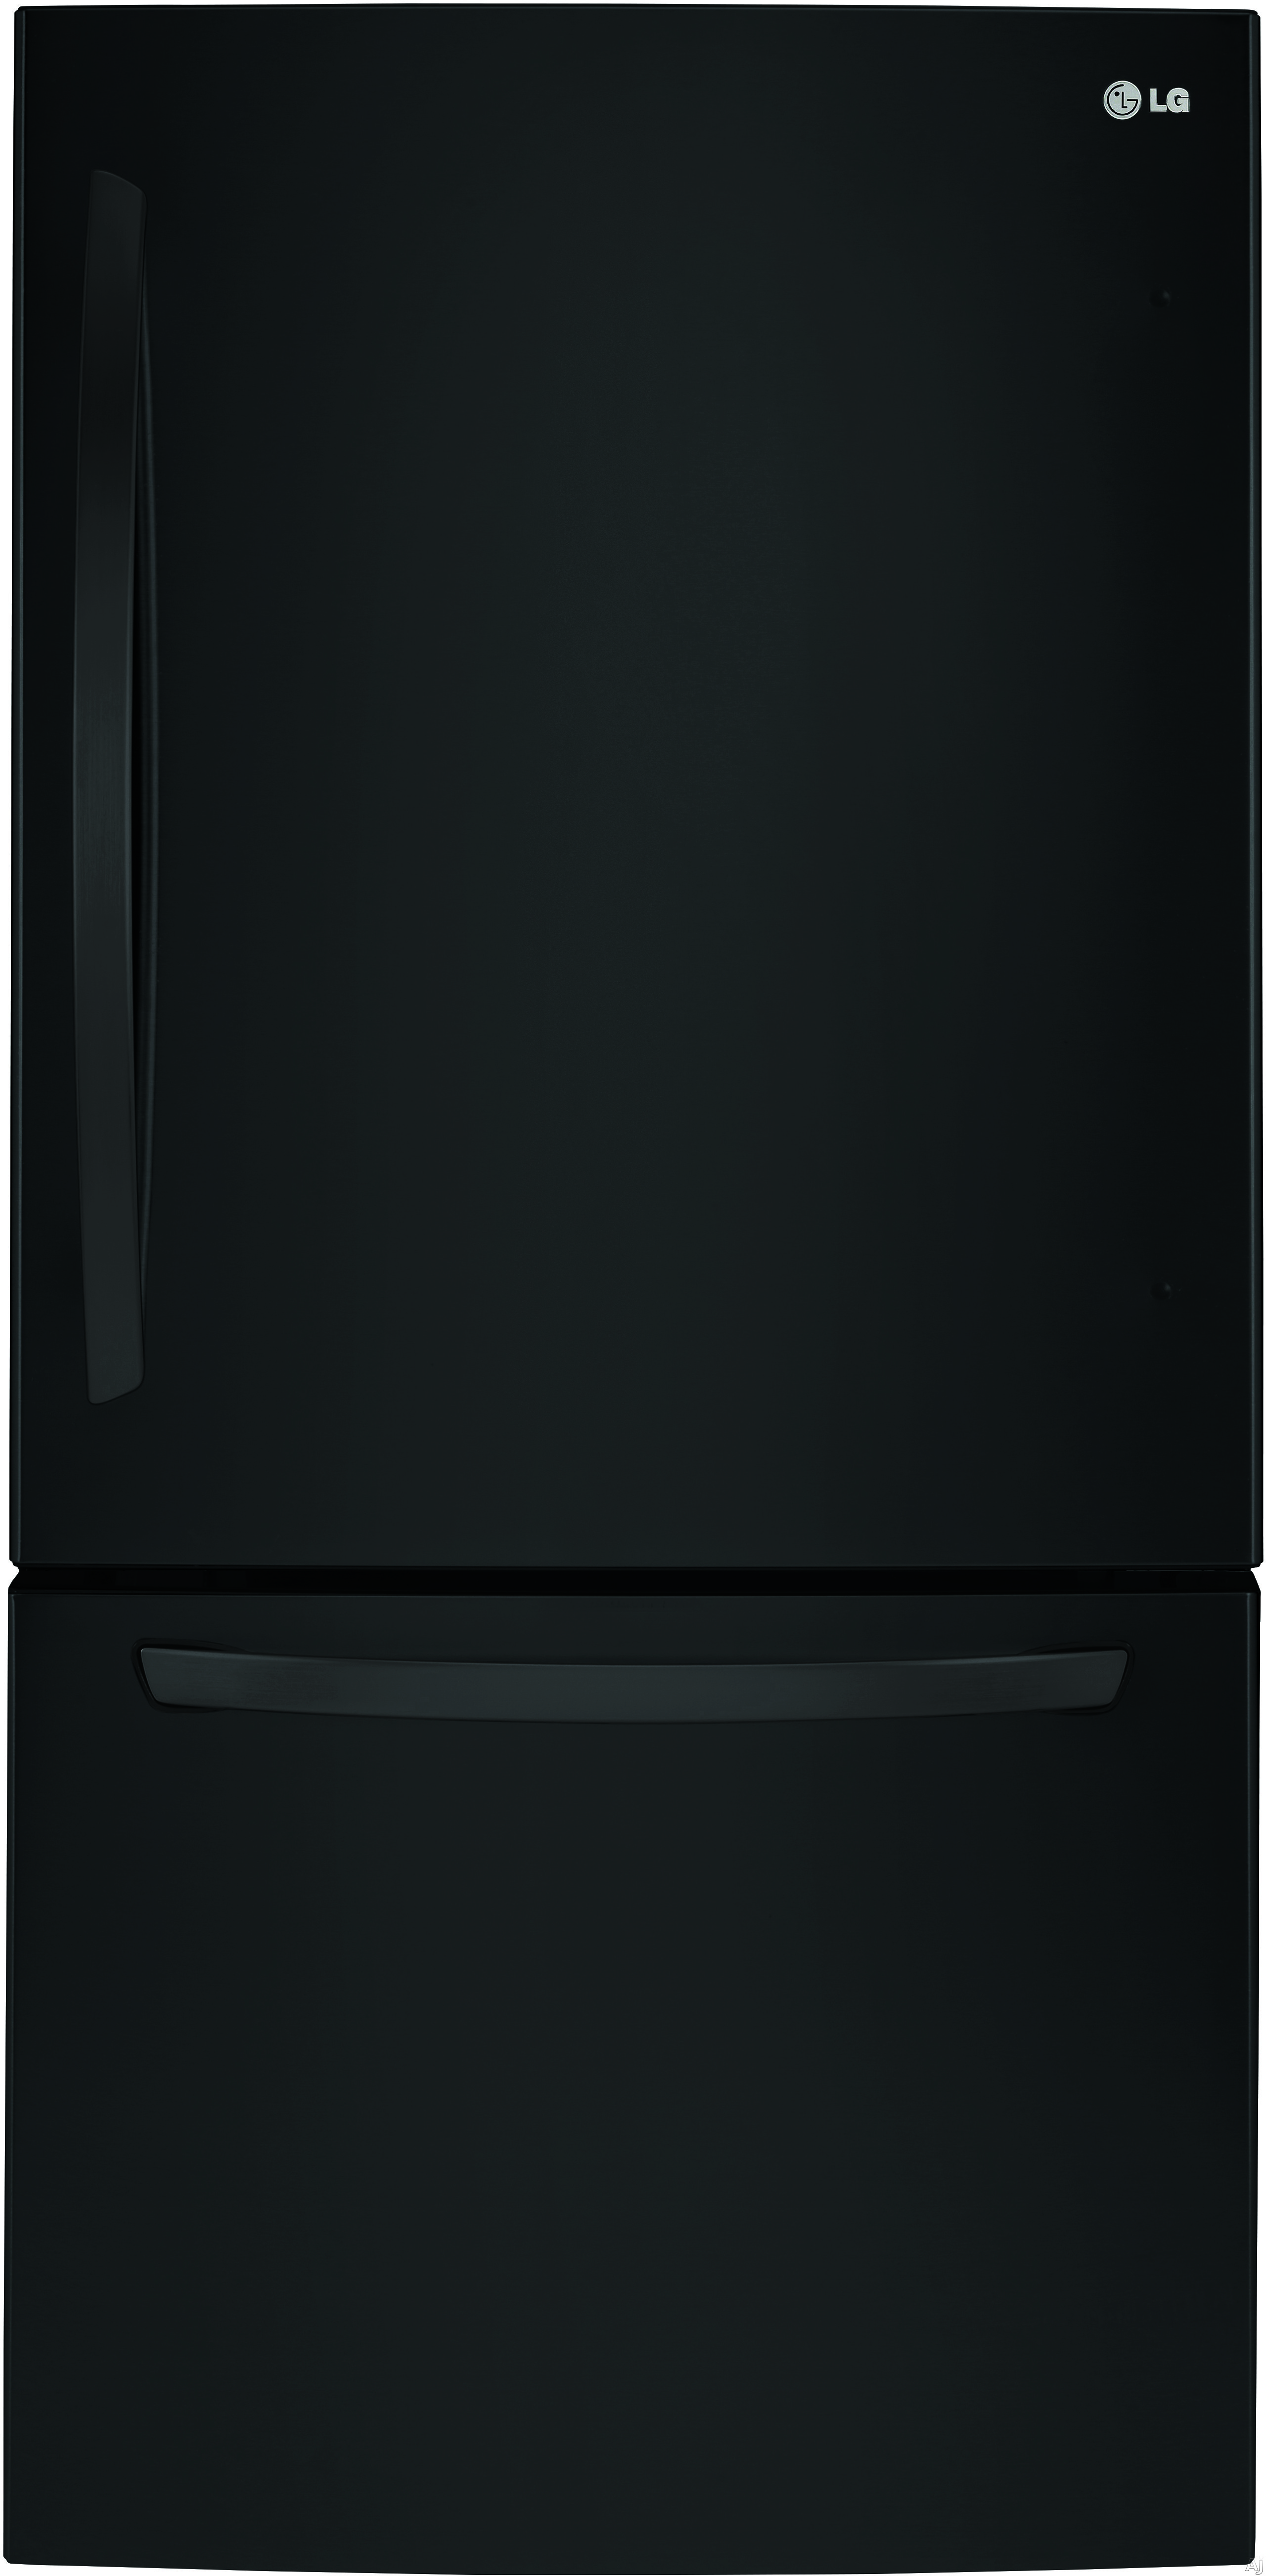 LG LDCS24223B 33 Inch Bottom Freezer Refrigerator with Linear Compressor, Ice Maker, SpillProtector™ Tempered Glass Shelves, Humidity-Controlled Crisper Drawers, Glide N' Serve™ Deli Drawer, SmartDiagnosis™, ENERGY STAR® and 24 cu. ft. Capacity: Black